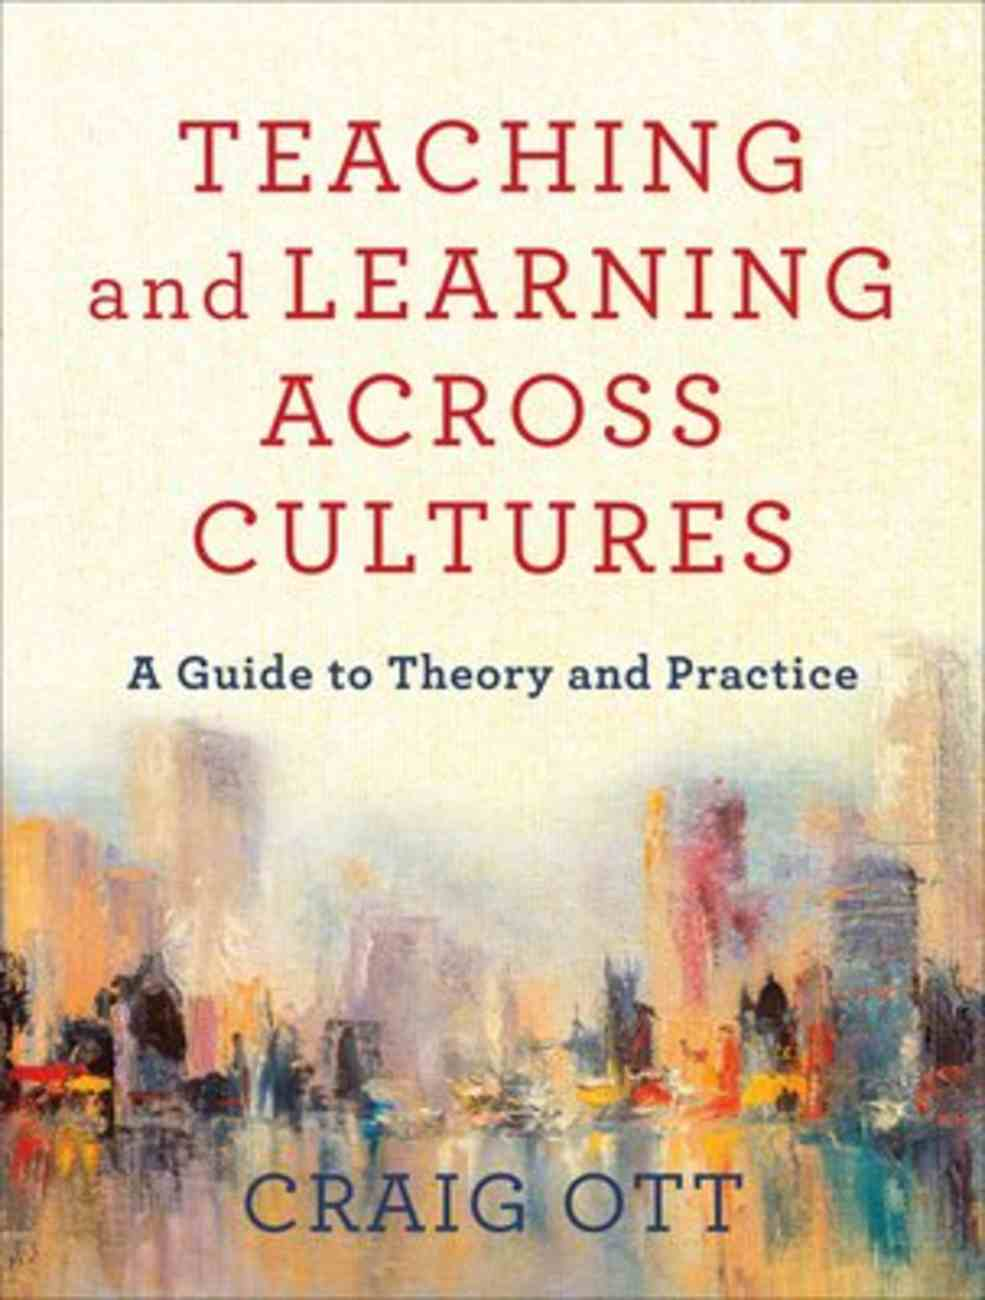 Teaching and Learning Across Cultures: A Guide to Theory and Practice Paperback